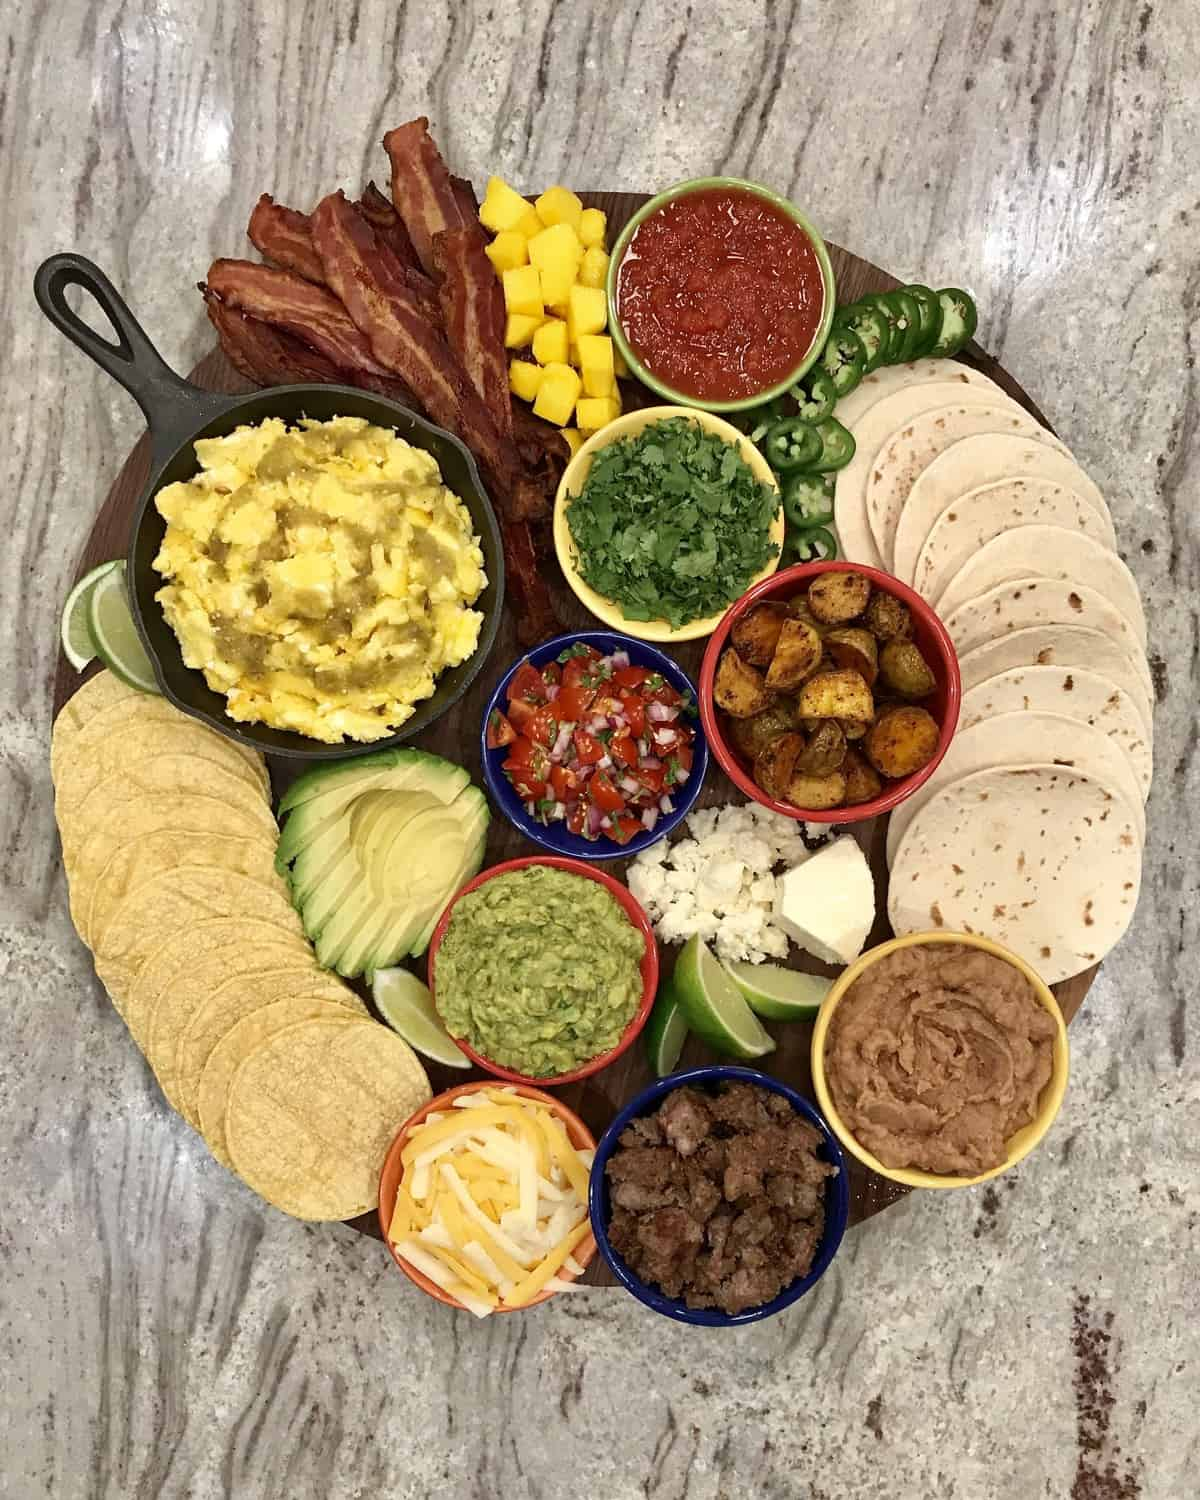 Build-Your-Own Breakfast Taco Board by The BakerMama